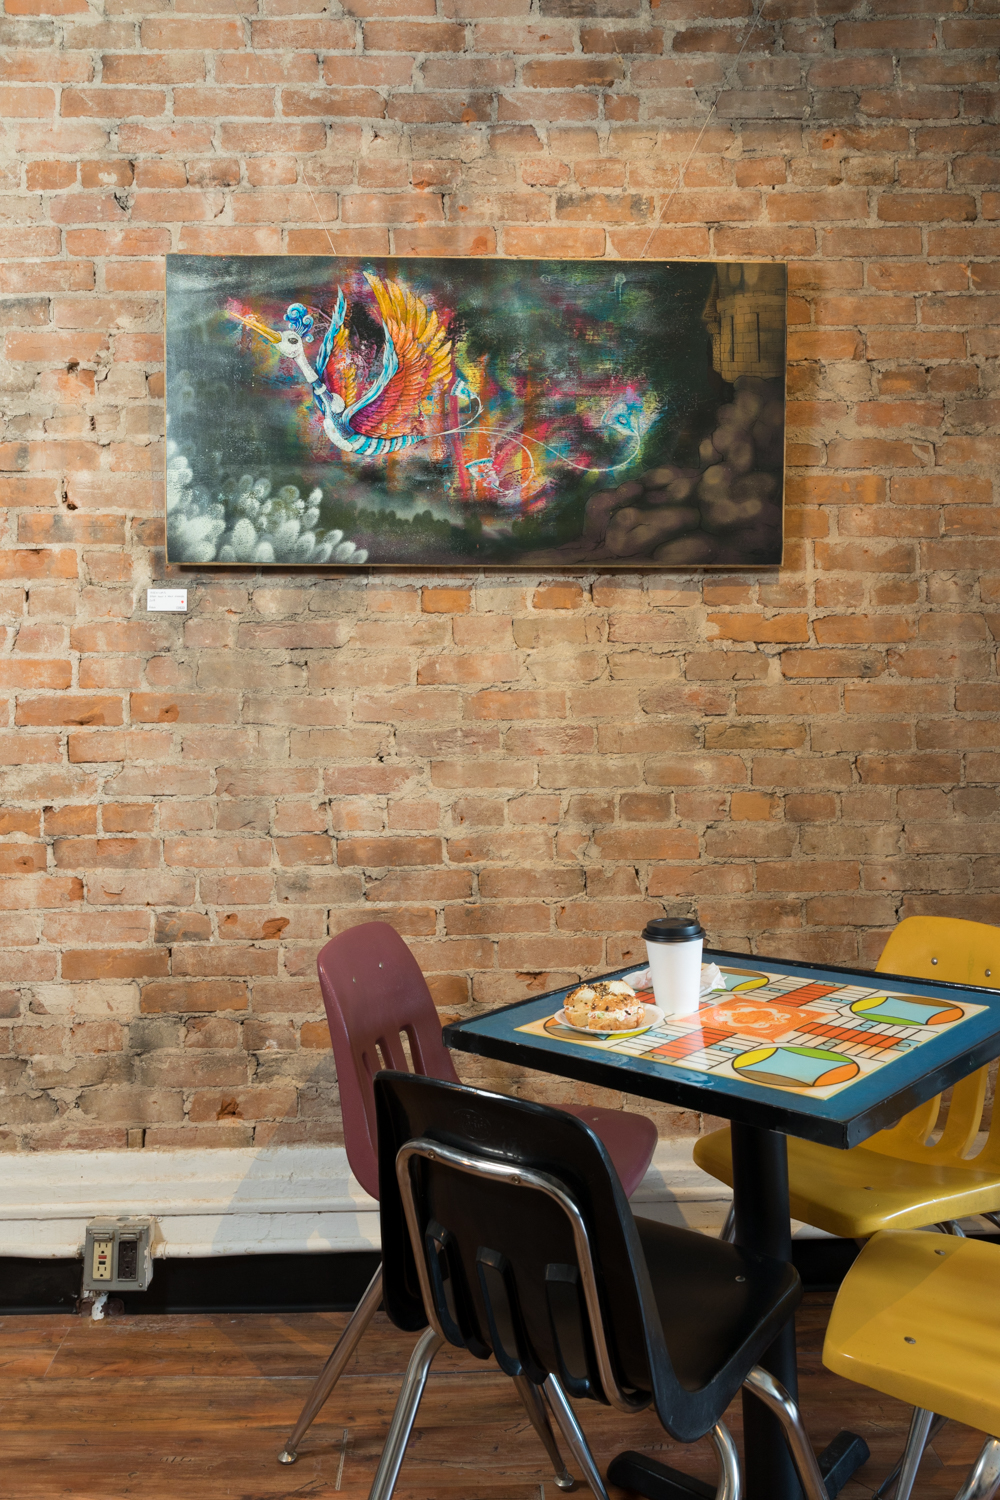 The Findlay Market breakfast and brunch spot is very casual and features stacks of games for customers to enjoy. The tops of the tables are made to look like board games as well. ADDRESS: 107 W Elder Street (45202) / Image: Marlene Rounds // Published: 2.21.19